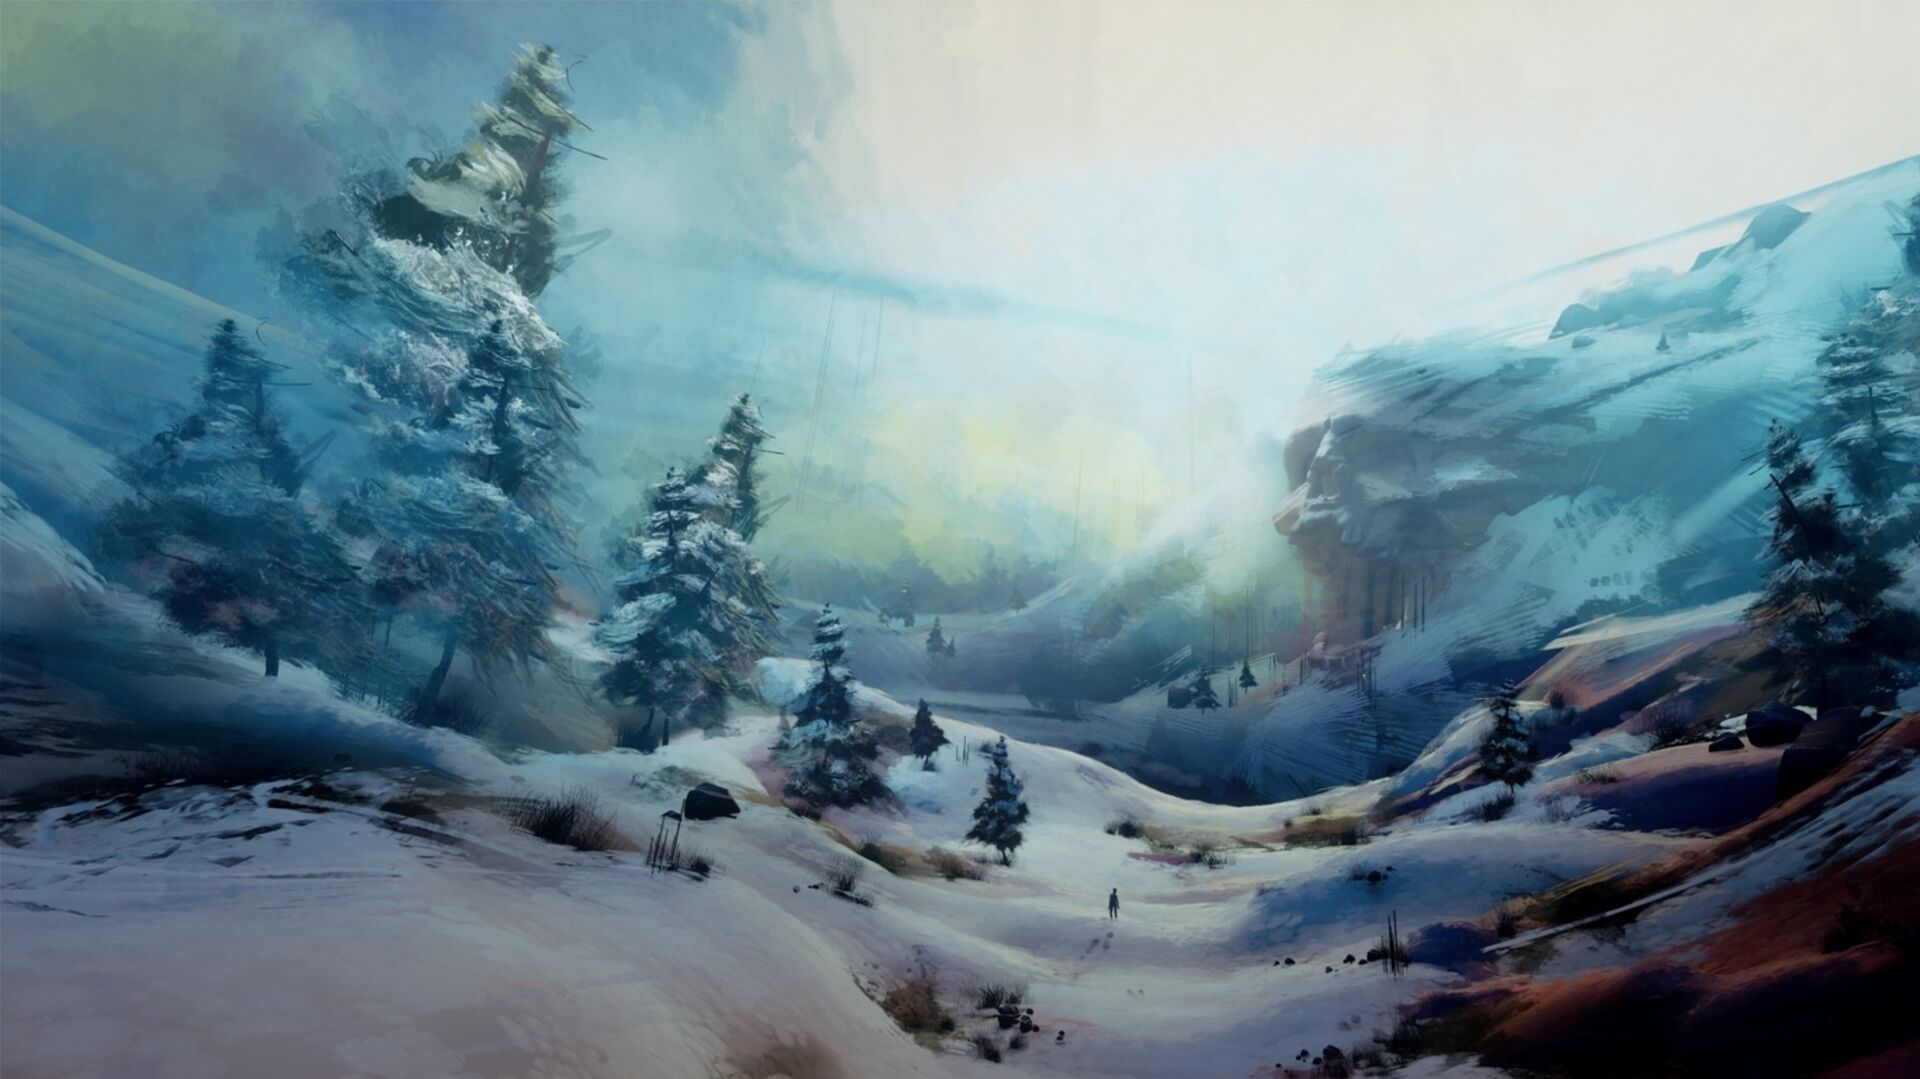 Media Molecule's Dreams enters paid early access this